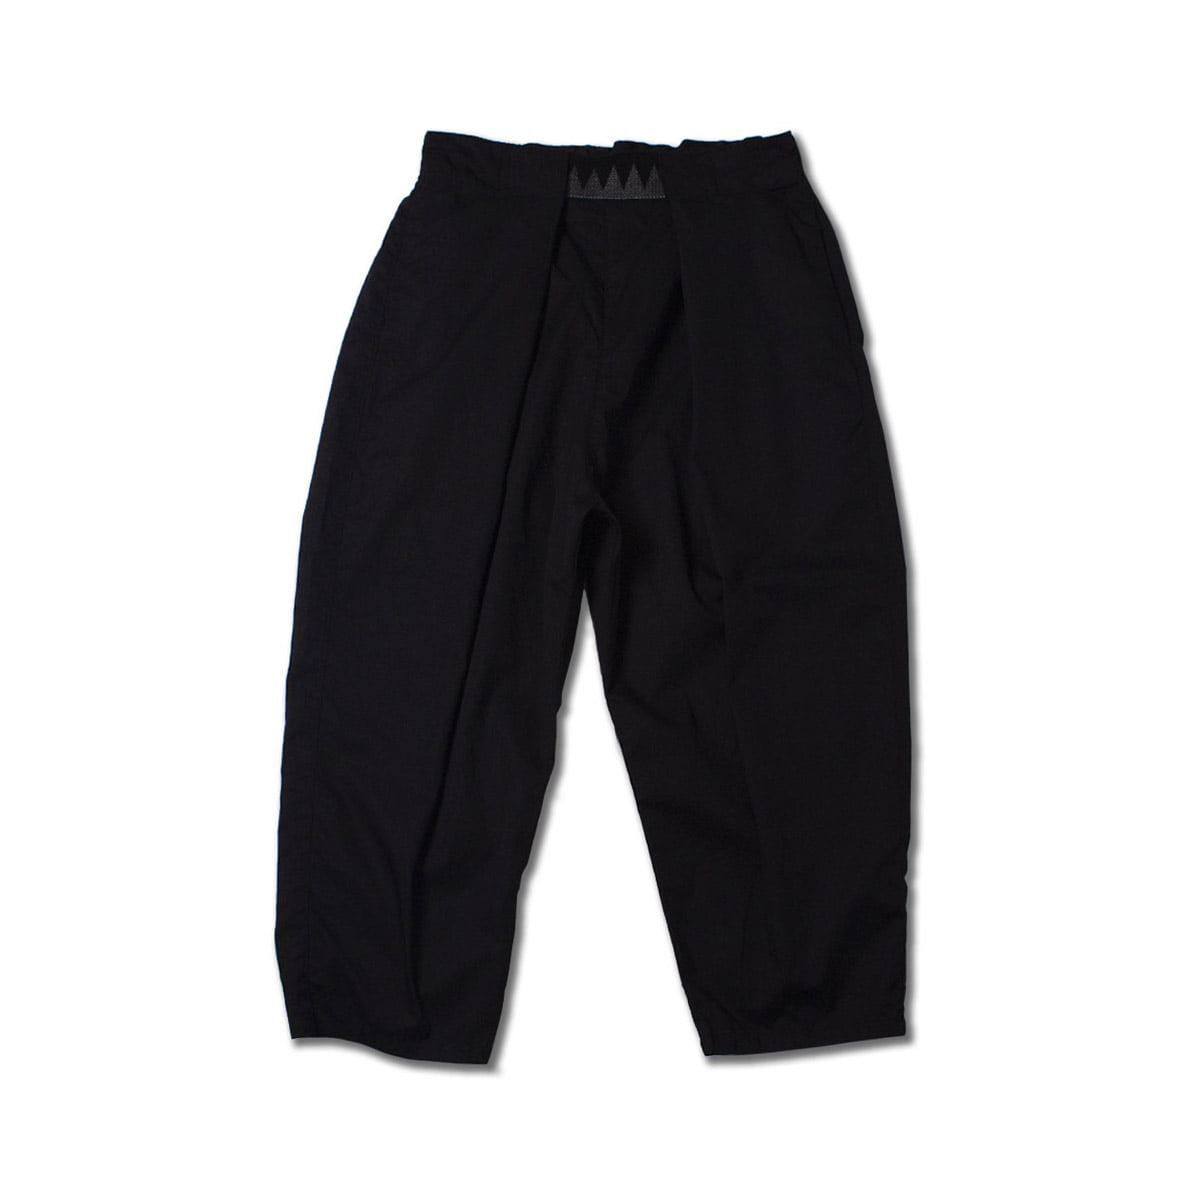 [KAPITAL] GABERGINE COTTON EASY BEACH GO PANTS 'BLACK'